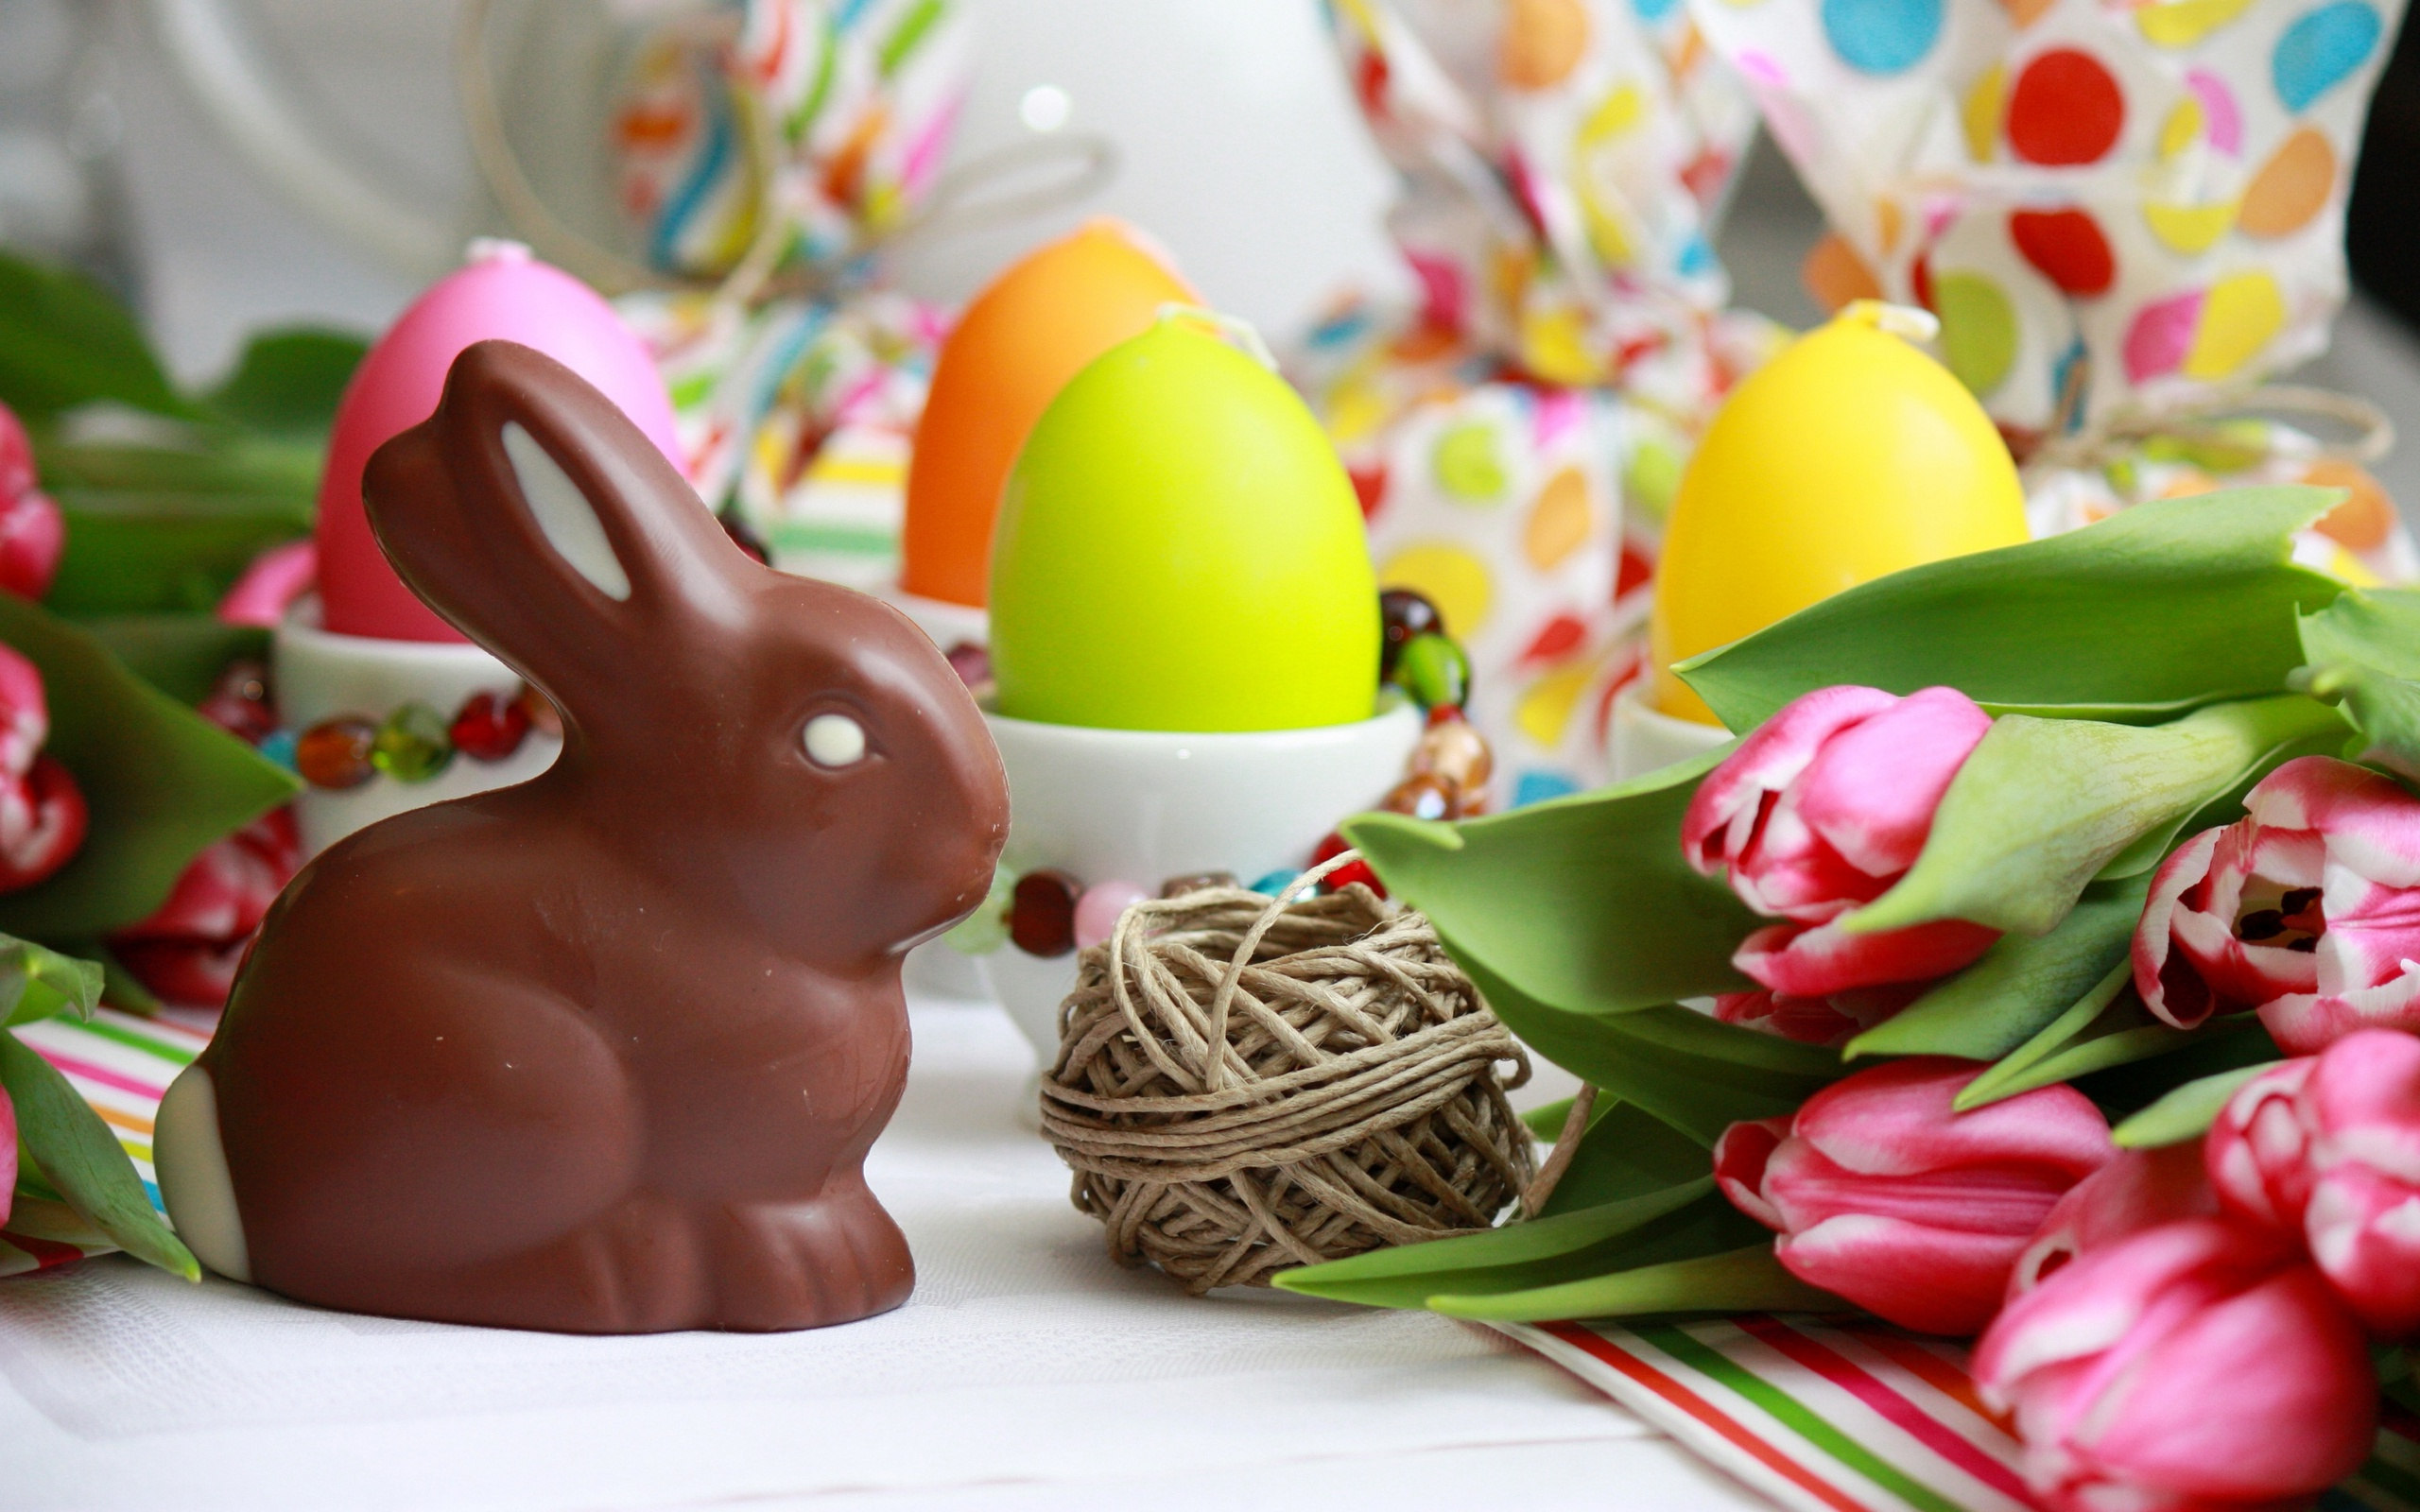 decorations story decor are springtime image anything that vogue elevated decoration but easter article adult childish